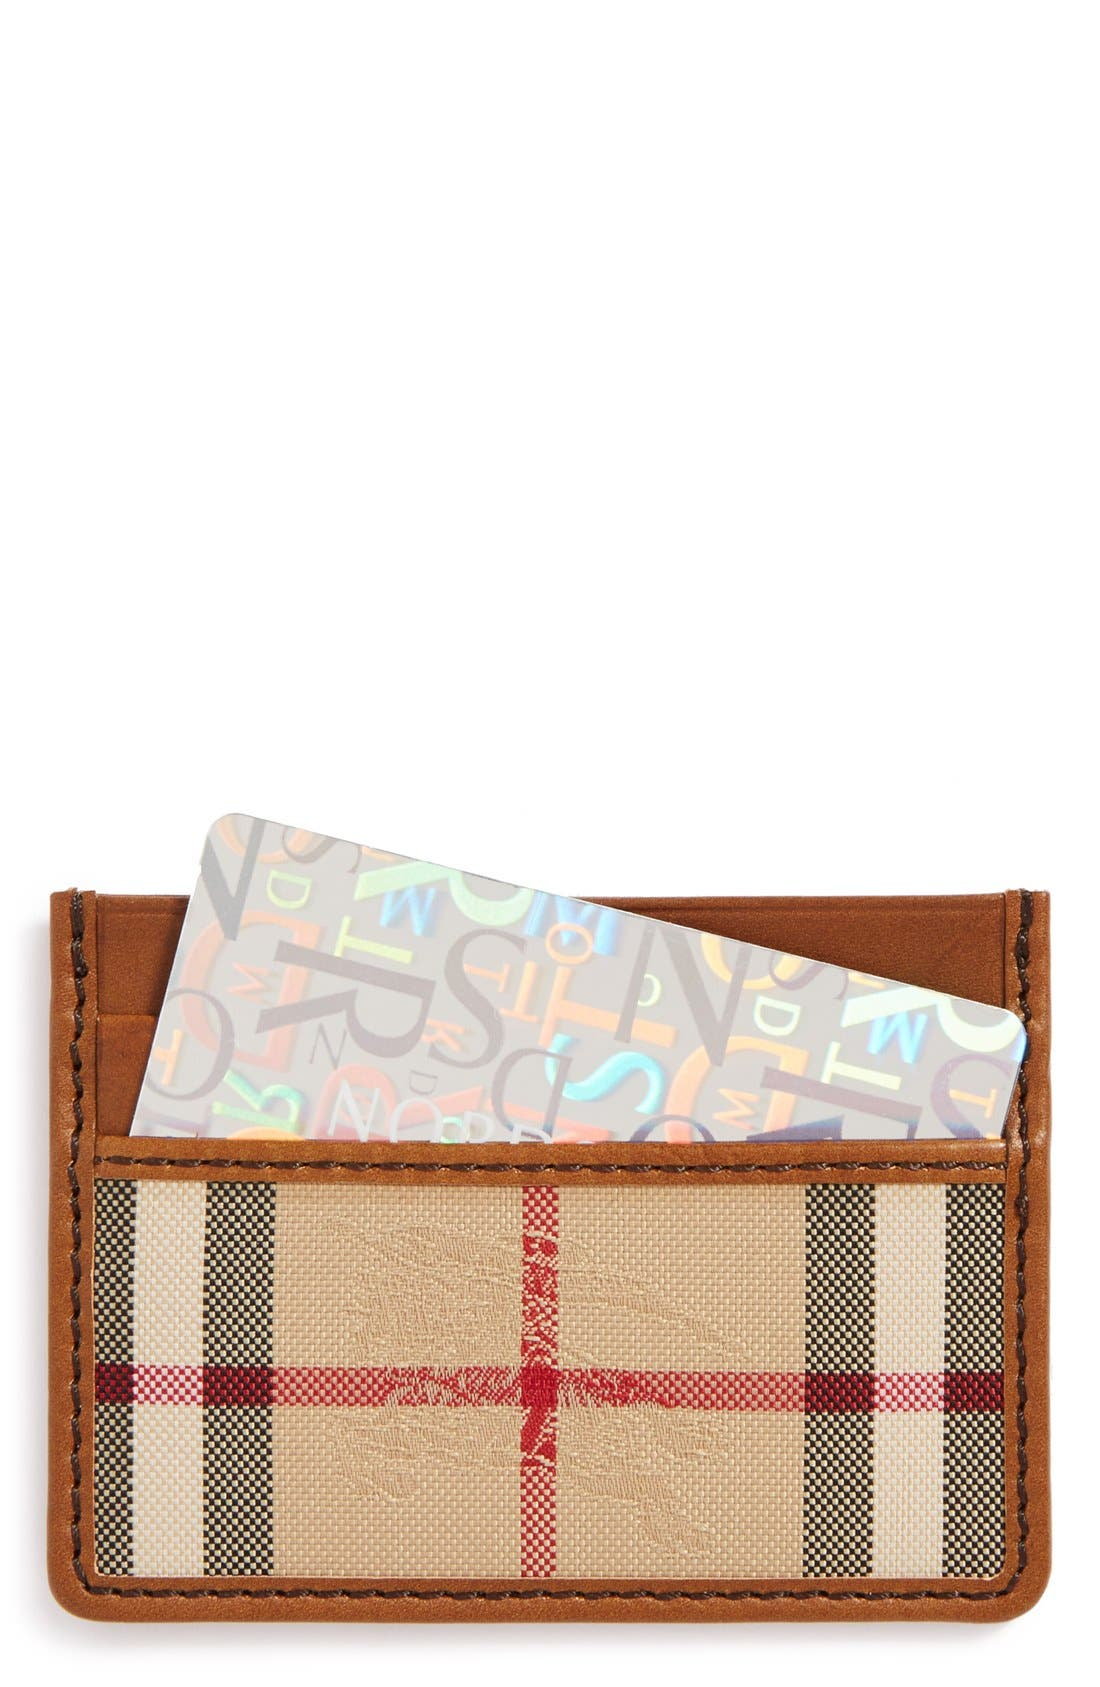 Sandon Horseferry Check Card Case,                             Main thumbnail 1, color,                             216